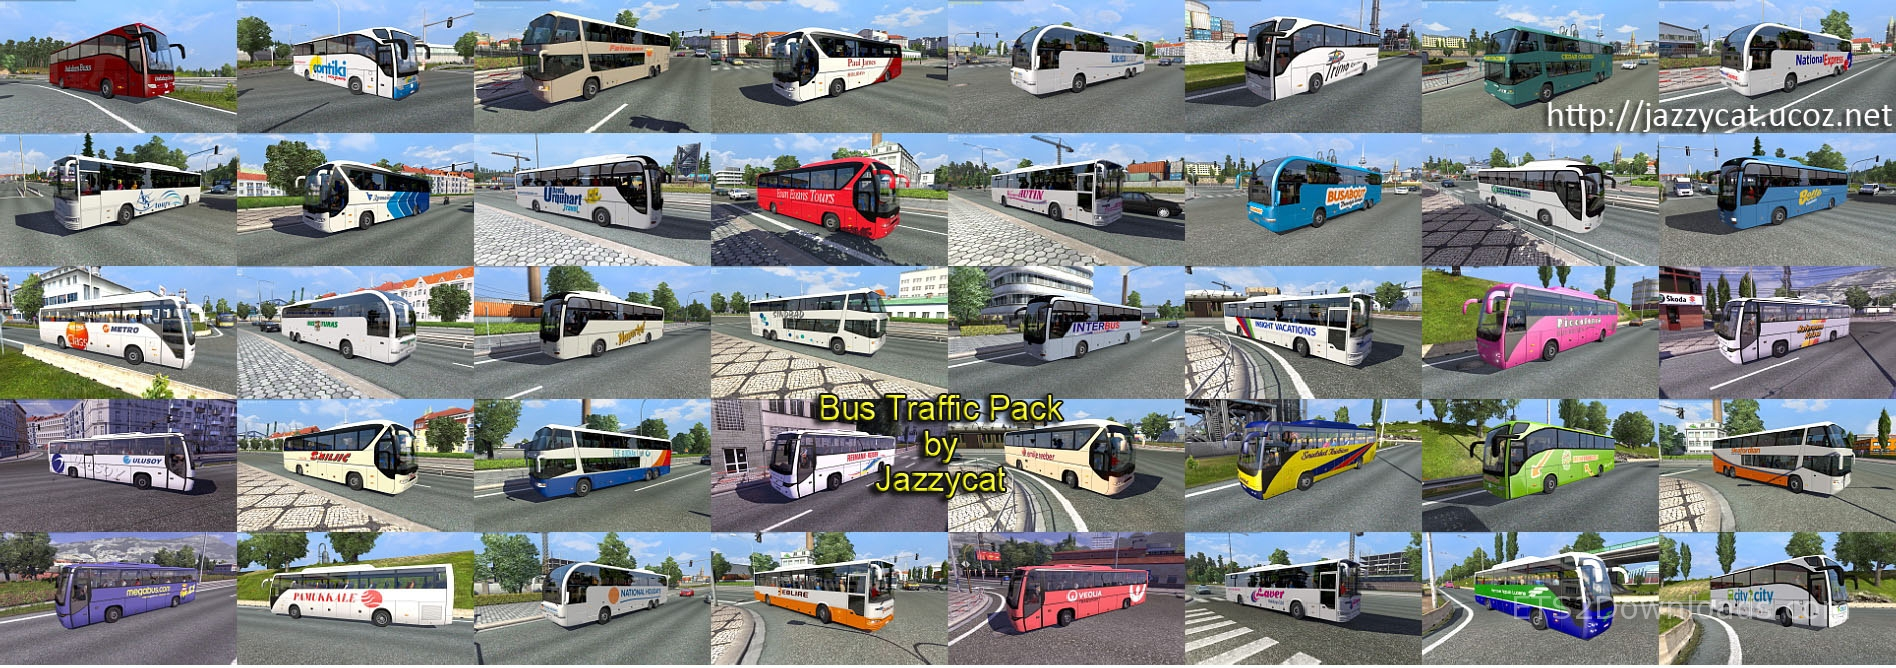 Bus Traffic Pack by Jazzycat v4 1 - ETS2 Mods